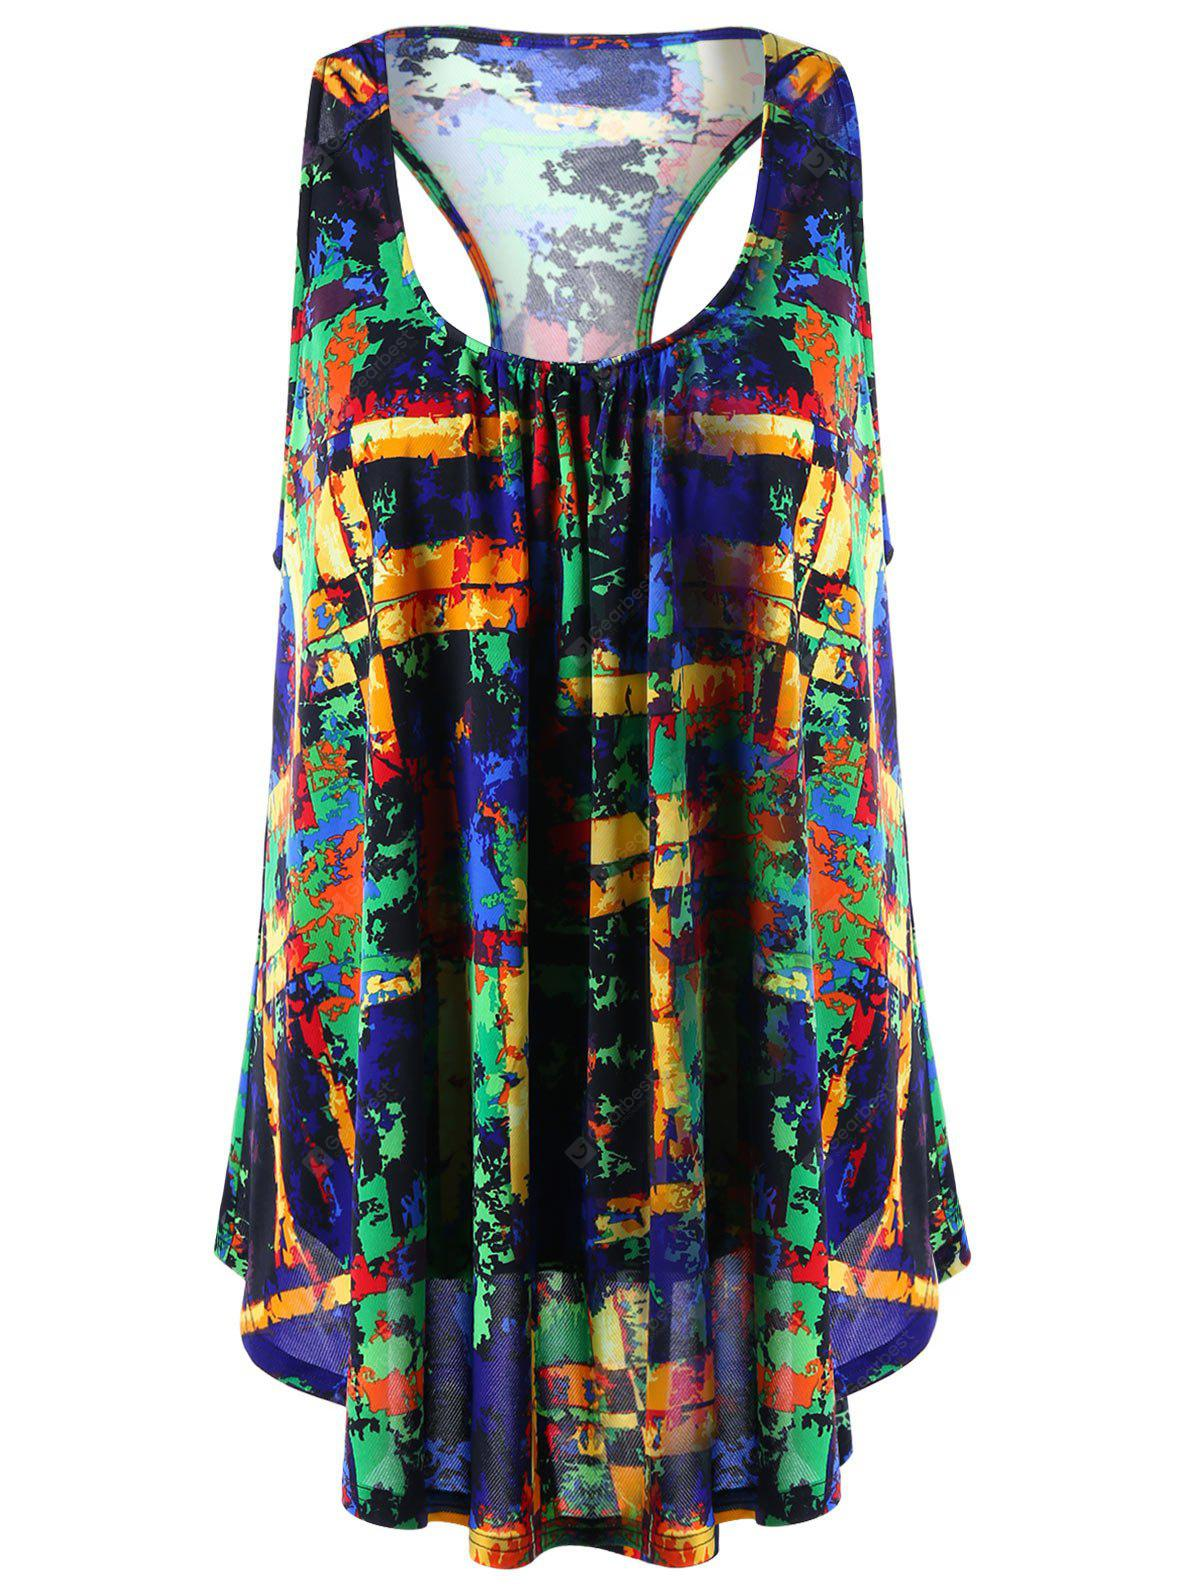 COLORMIX 2XL U Neck Colorful Print Racerback Top